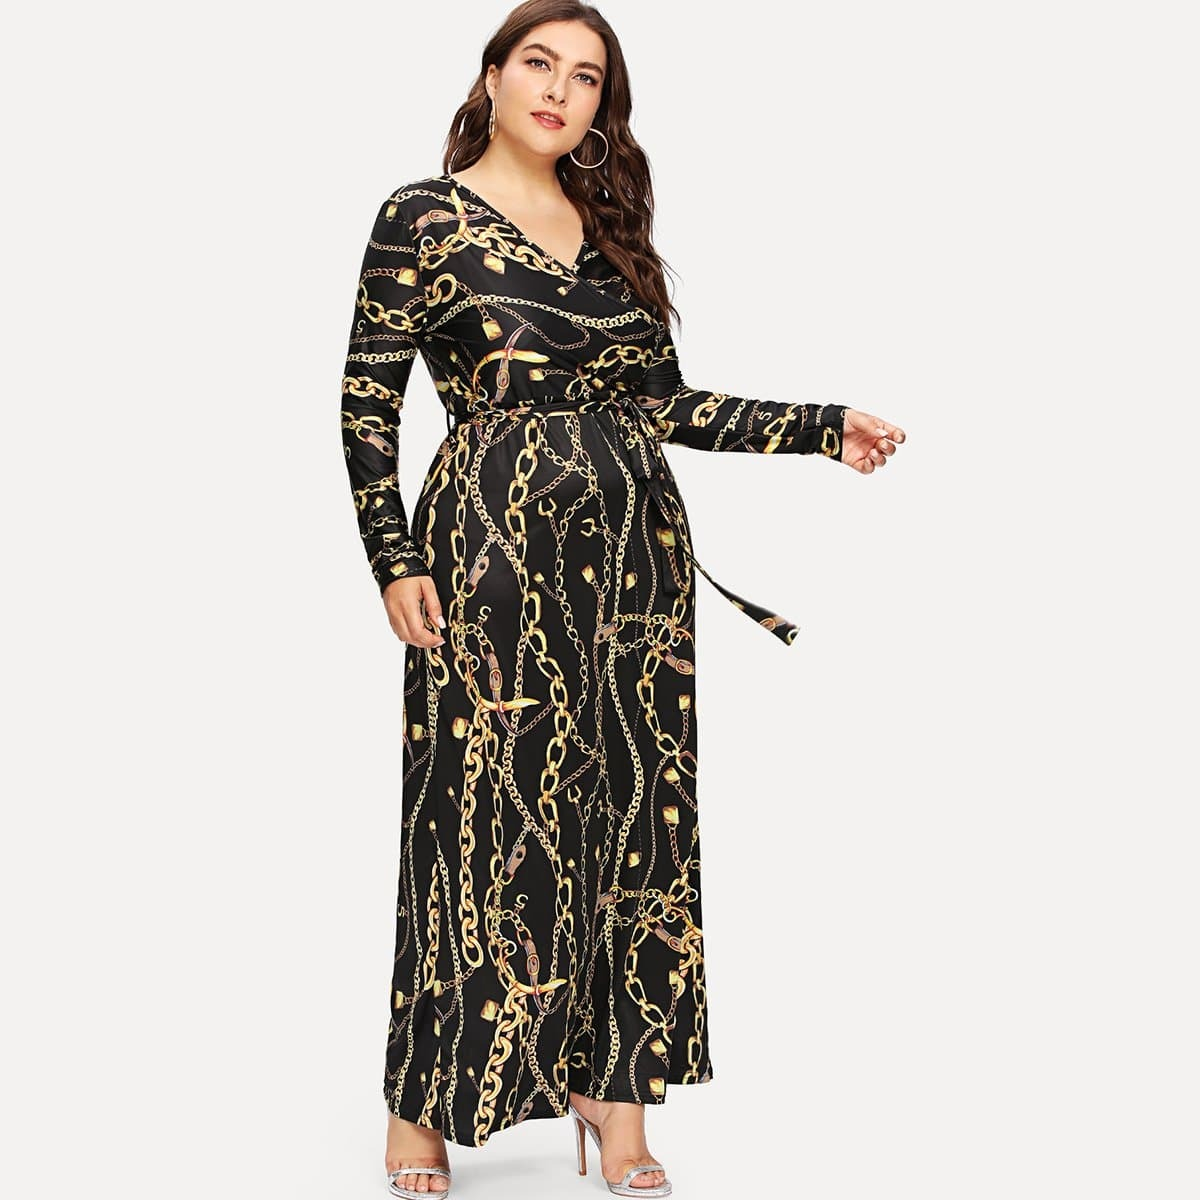 Digital Print Plunging Gown Dress